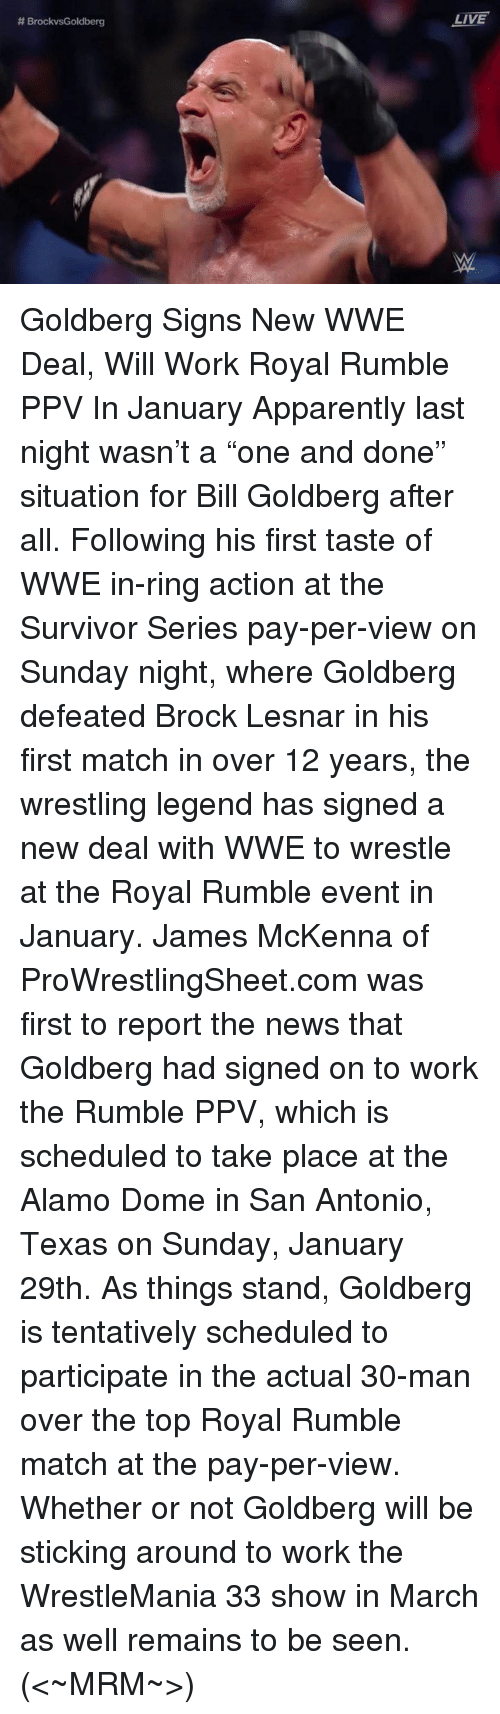 """Apparently, Memes, and Survivor: BrockvsGoldberg  LIVE Goldberg Signs New WWE Deal, Will Work Royal Rumble PPV In January  Apparently last night wasn't a """"one and done"""" situation for Bill Goldberg after all.  Following his first taste of WWE in-ring action at the Survivor Series pay-per-view on Sunday night, where Goldberg defeated Brock Lesnar in his first match in over 12 years, the wrestling legend has signed a new deal with WWE to wrestle at the Royal Rumble event in January.  James McKenna of ProWrestlingSheet.com was first to report the news that Goldberg had signed on to work the Rumble PPV, which is scheduled to take place at the Alamo Dome in San Antonio, Texas on Sunday, January 29th.  As things stand, Goldberg is tentatively scheduled to participate in the actual 30-man over the top Royal Rumble match at the pay-per-view. Whether or not Goldberg will be sticking around to work the WrestleMania 33 show in March as well remains to be seen.  (<~MRM~>)"""